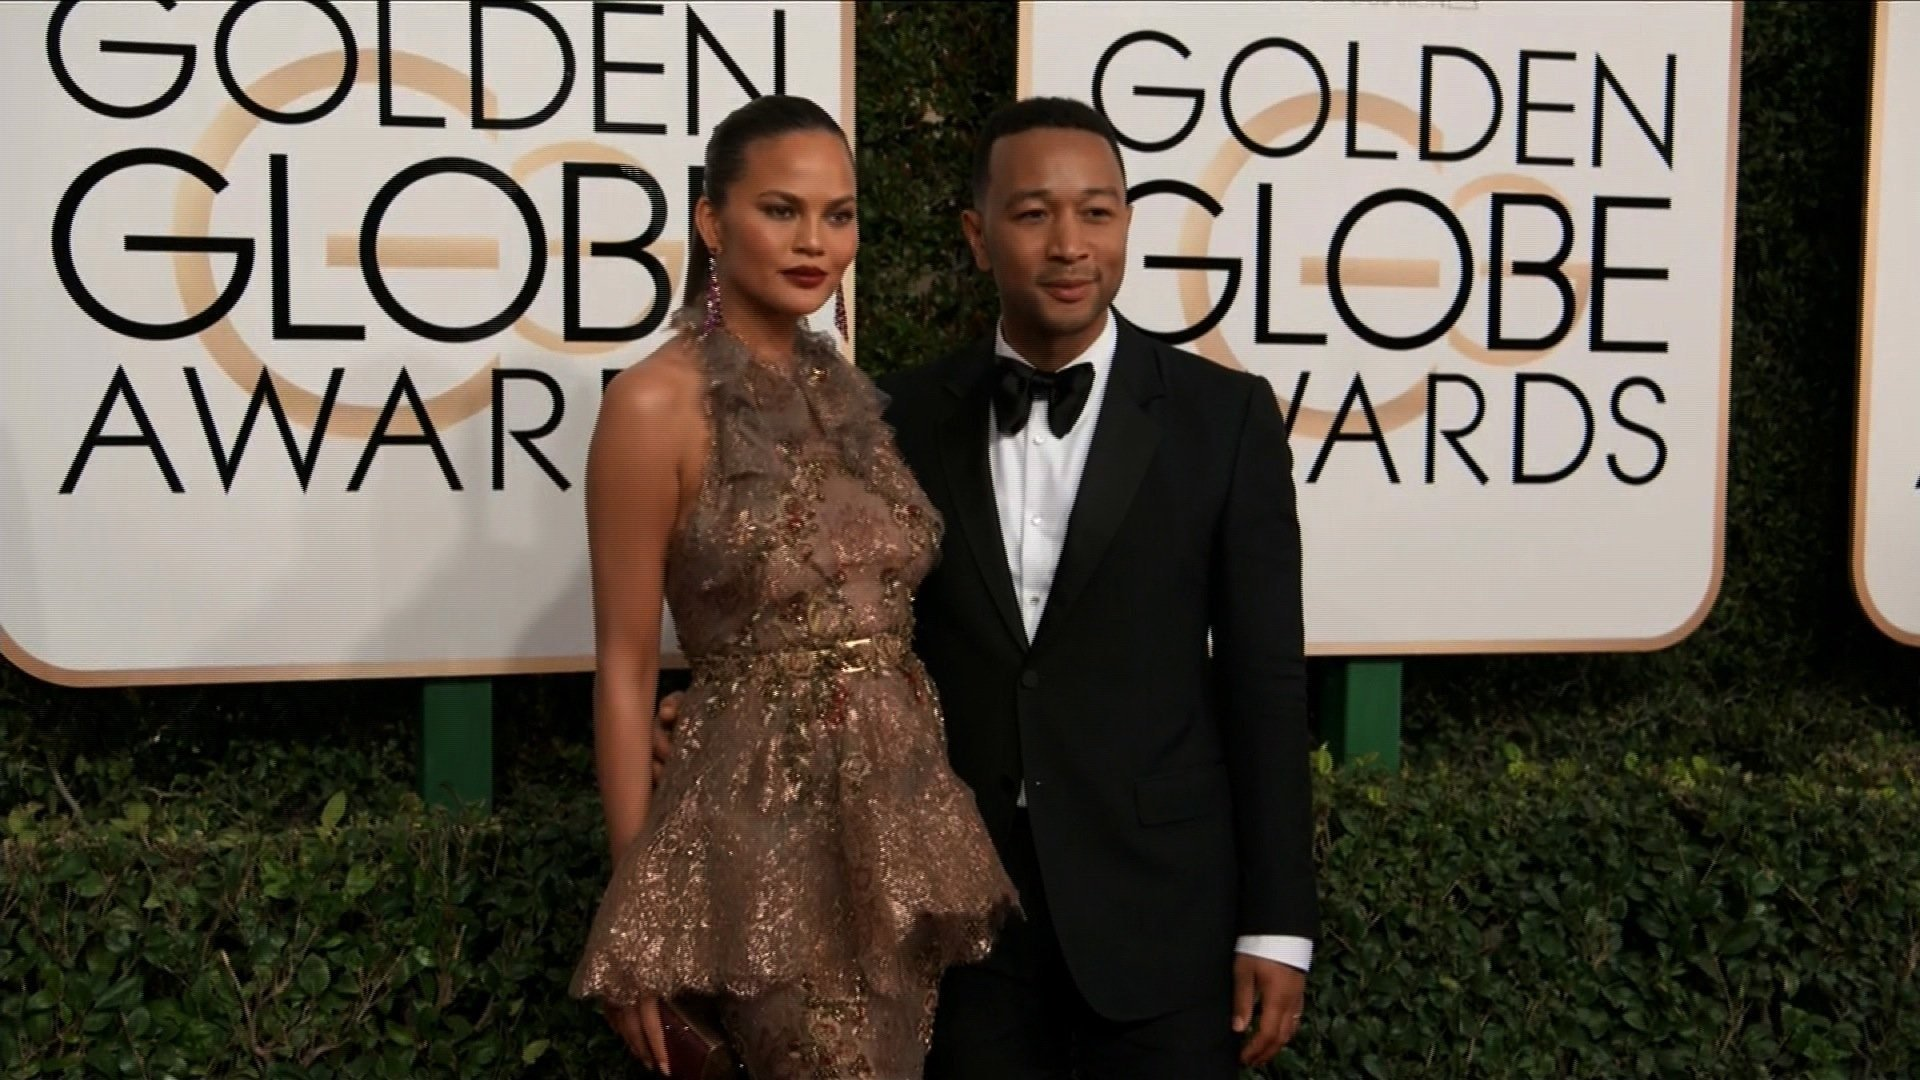 Chrissy Teigen and John Legend at the 74th annual Golden Globe Awards.